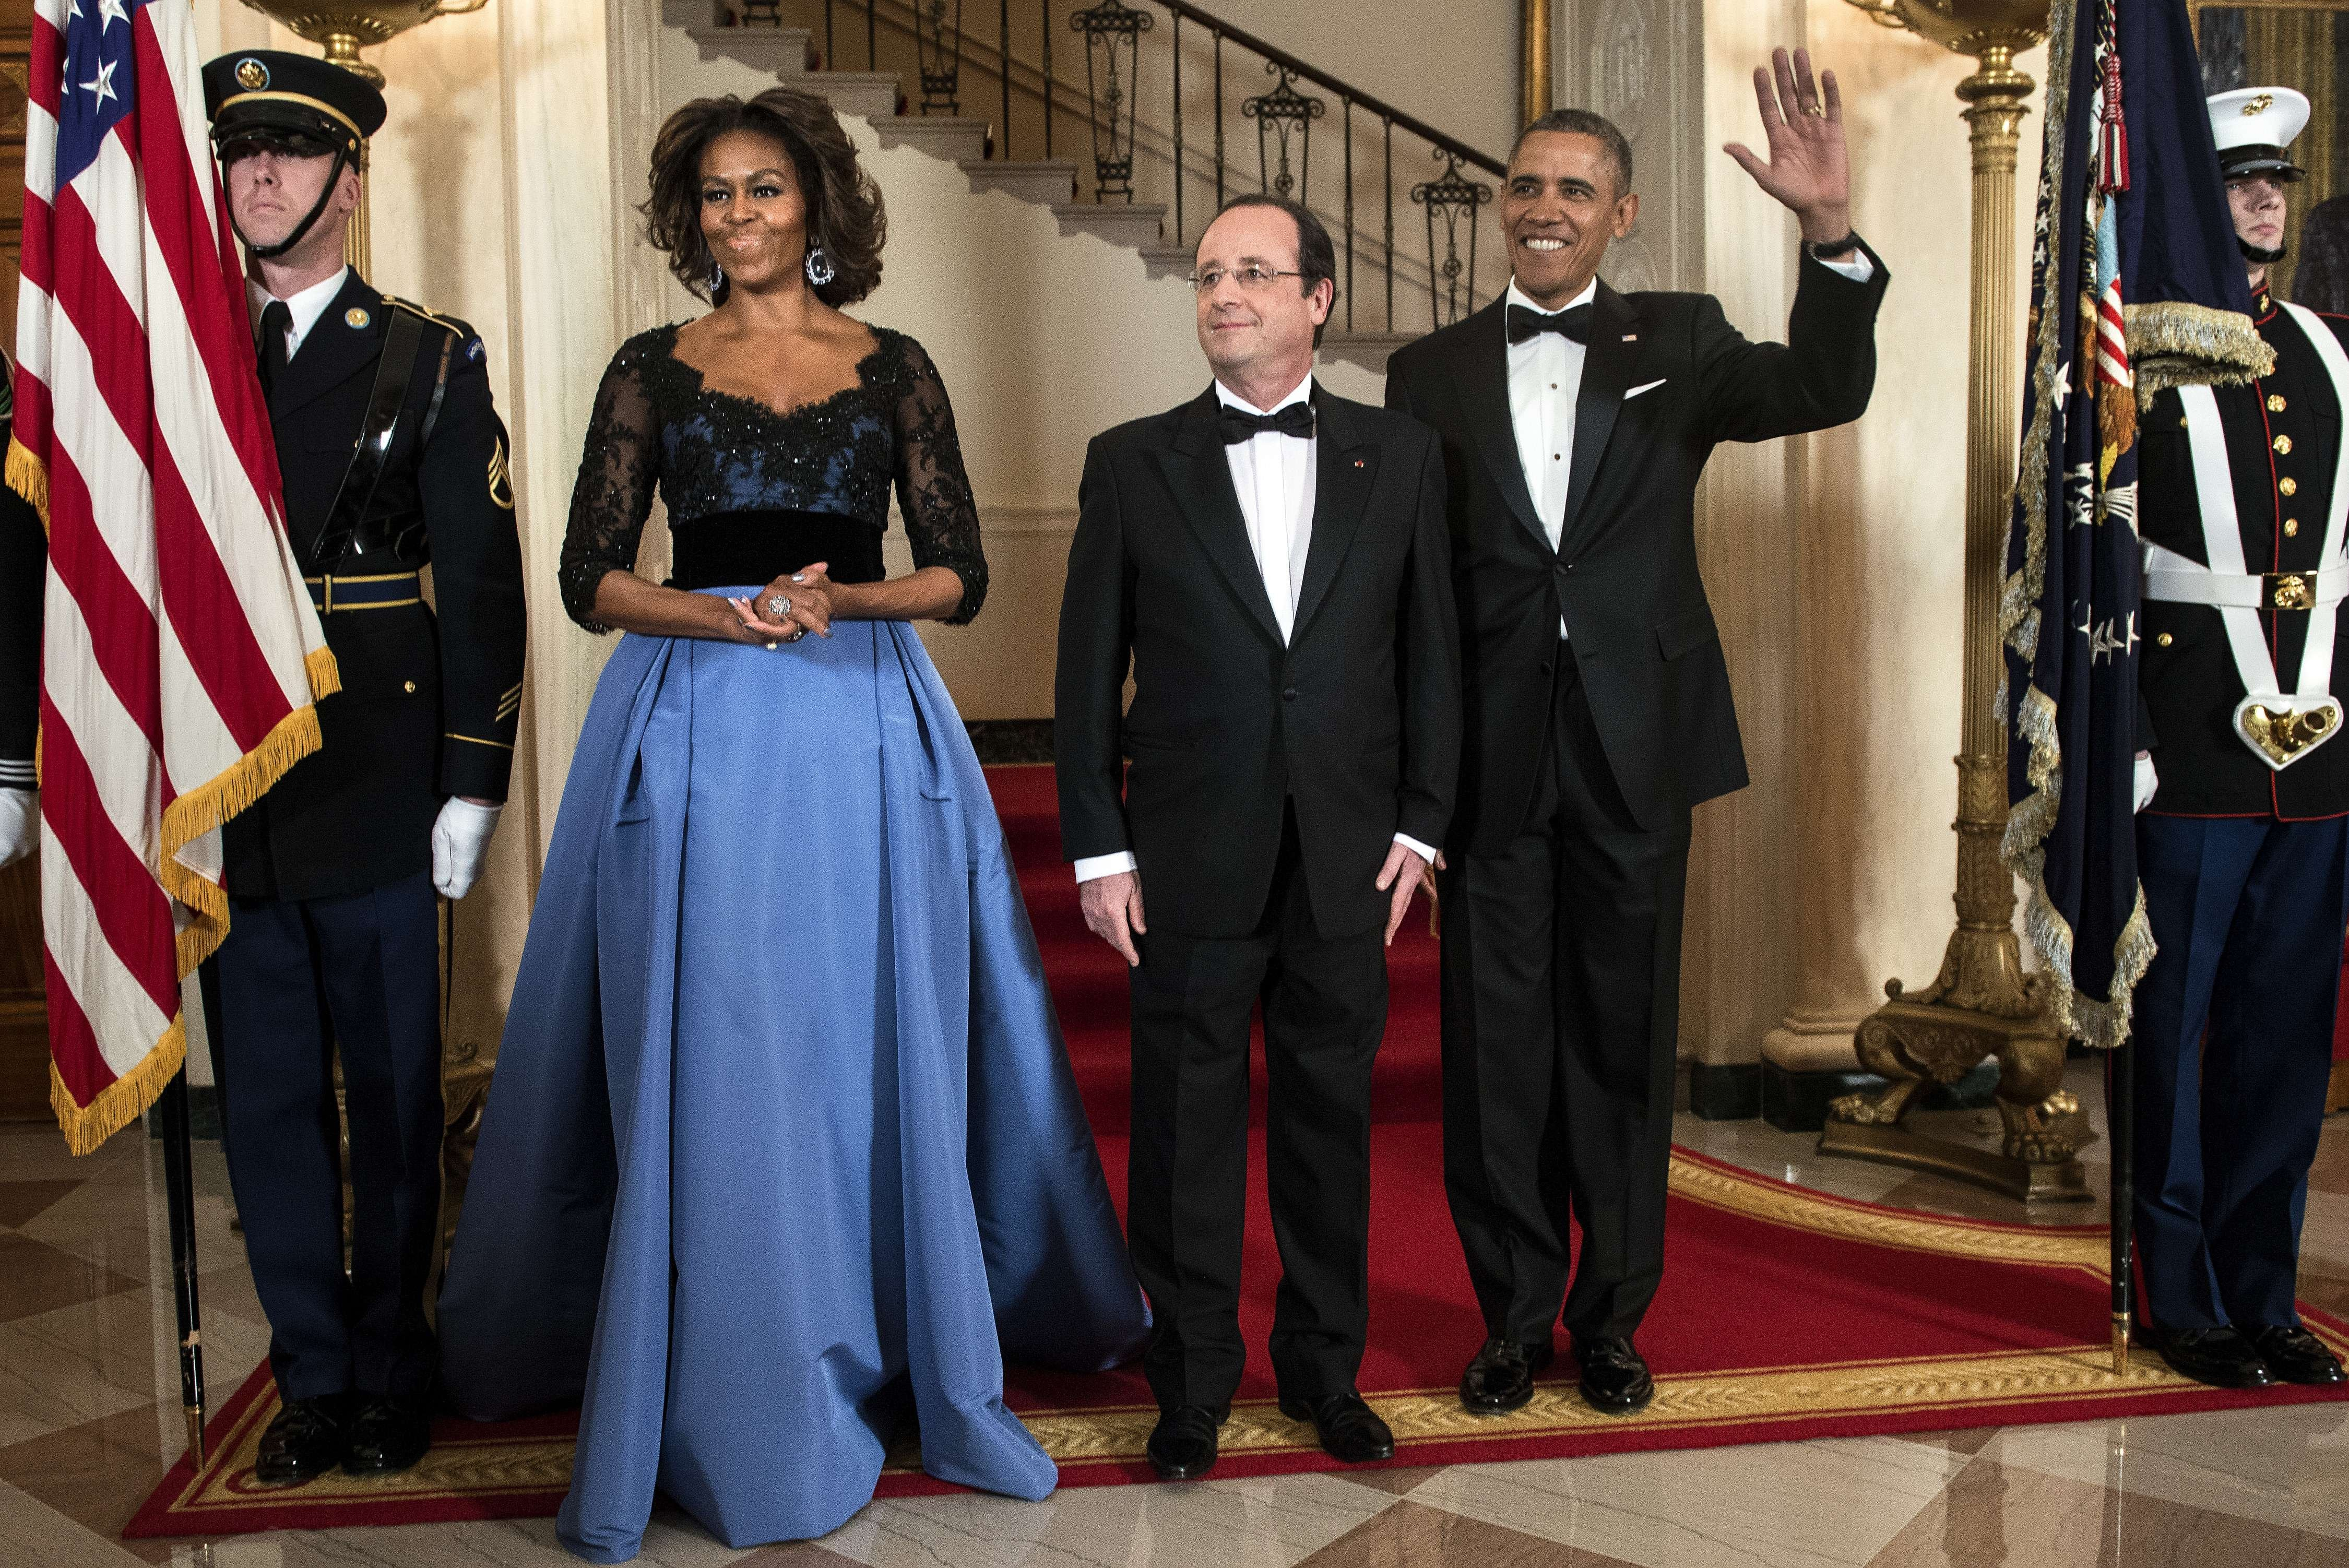 First Lady Michelle Obama, French President Francois Hollande and President Barack Obama pose in front of the Grand Staircase for an official photo before a State Dinner at the White House February 11, 2014 in Washington.